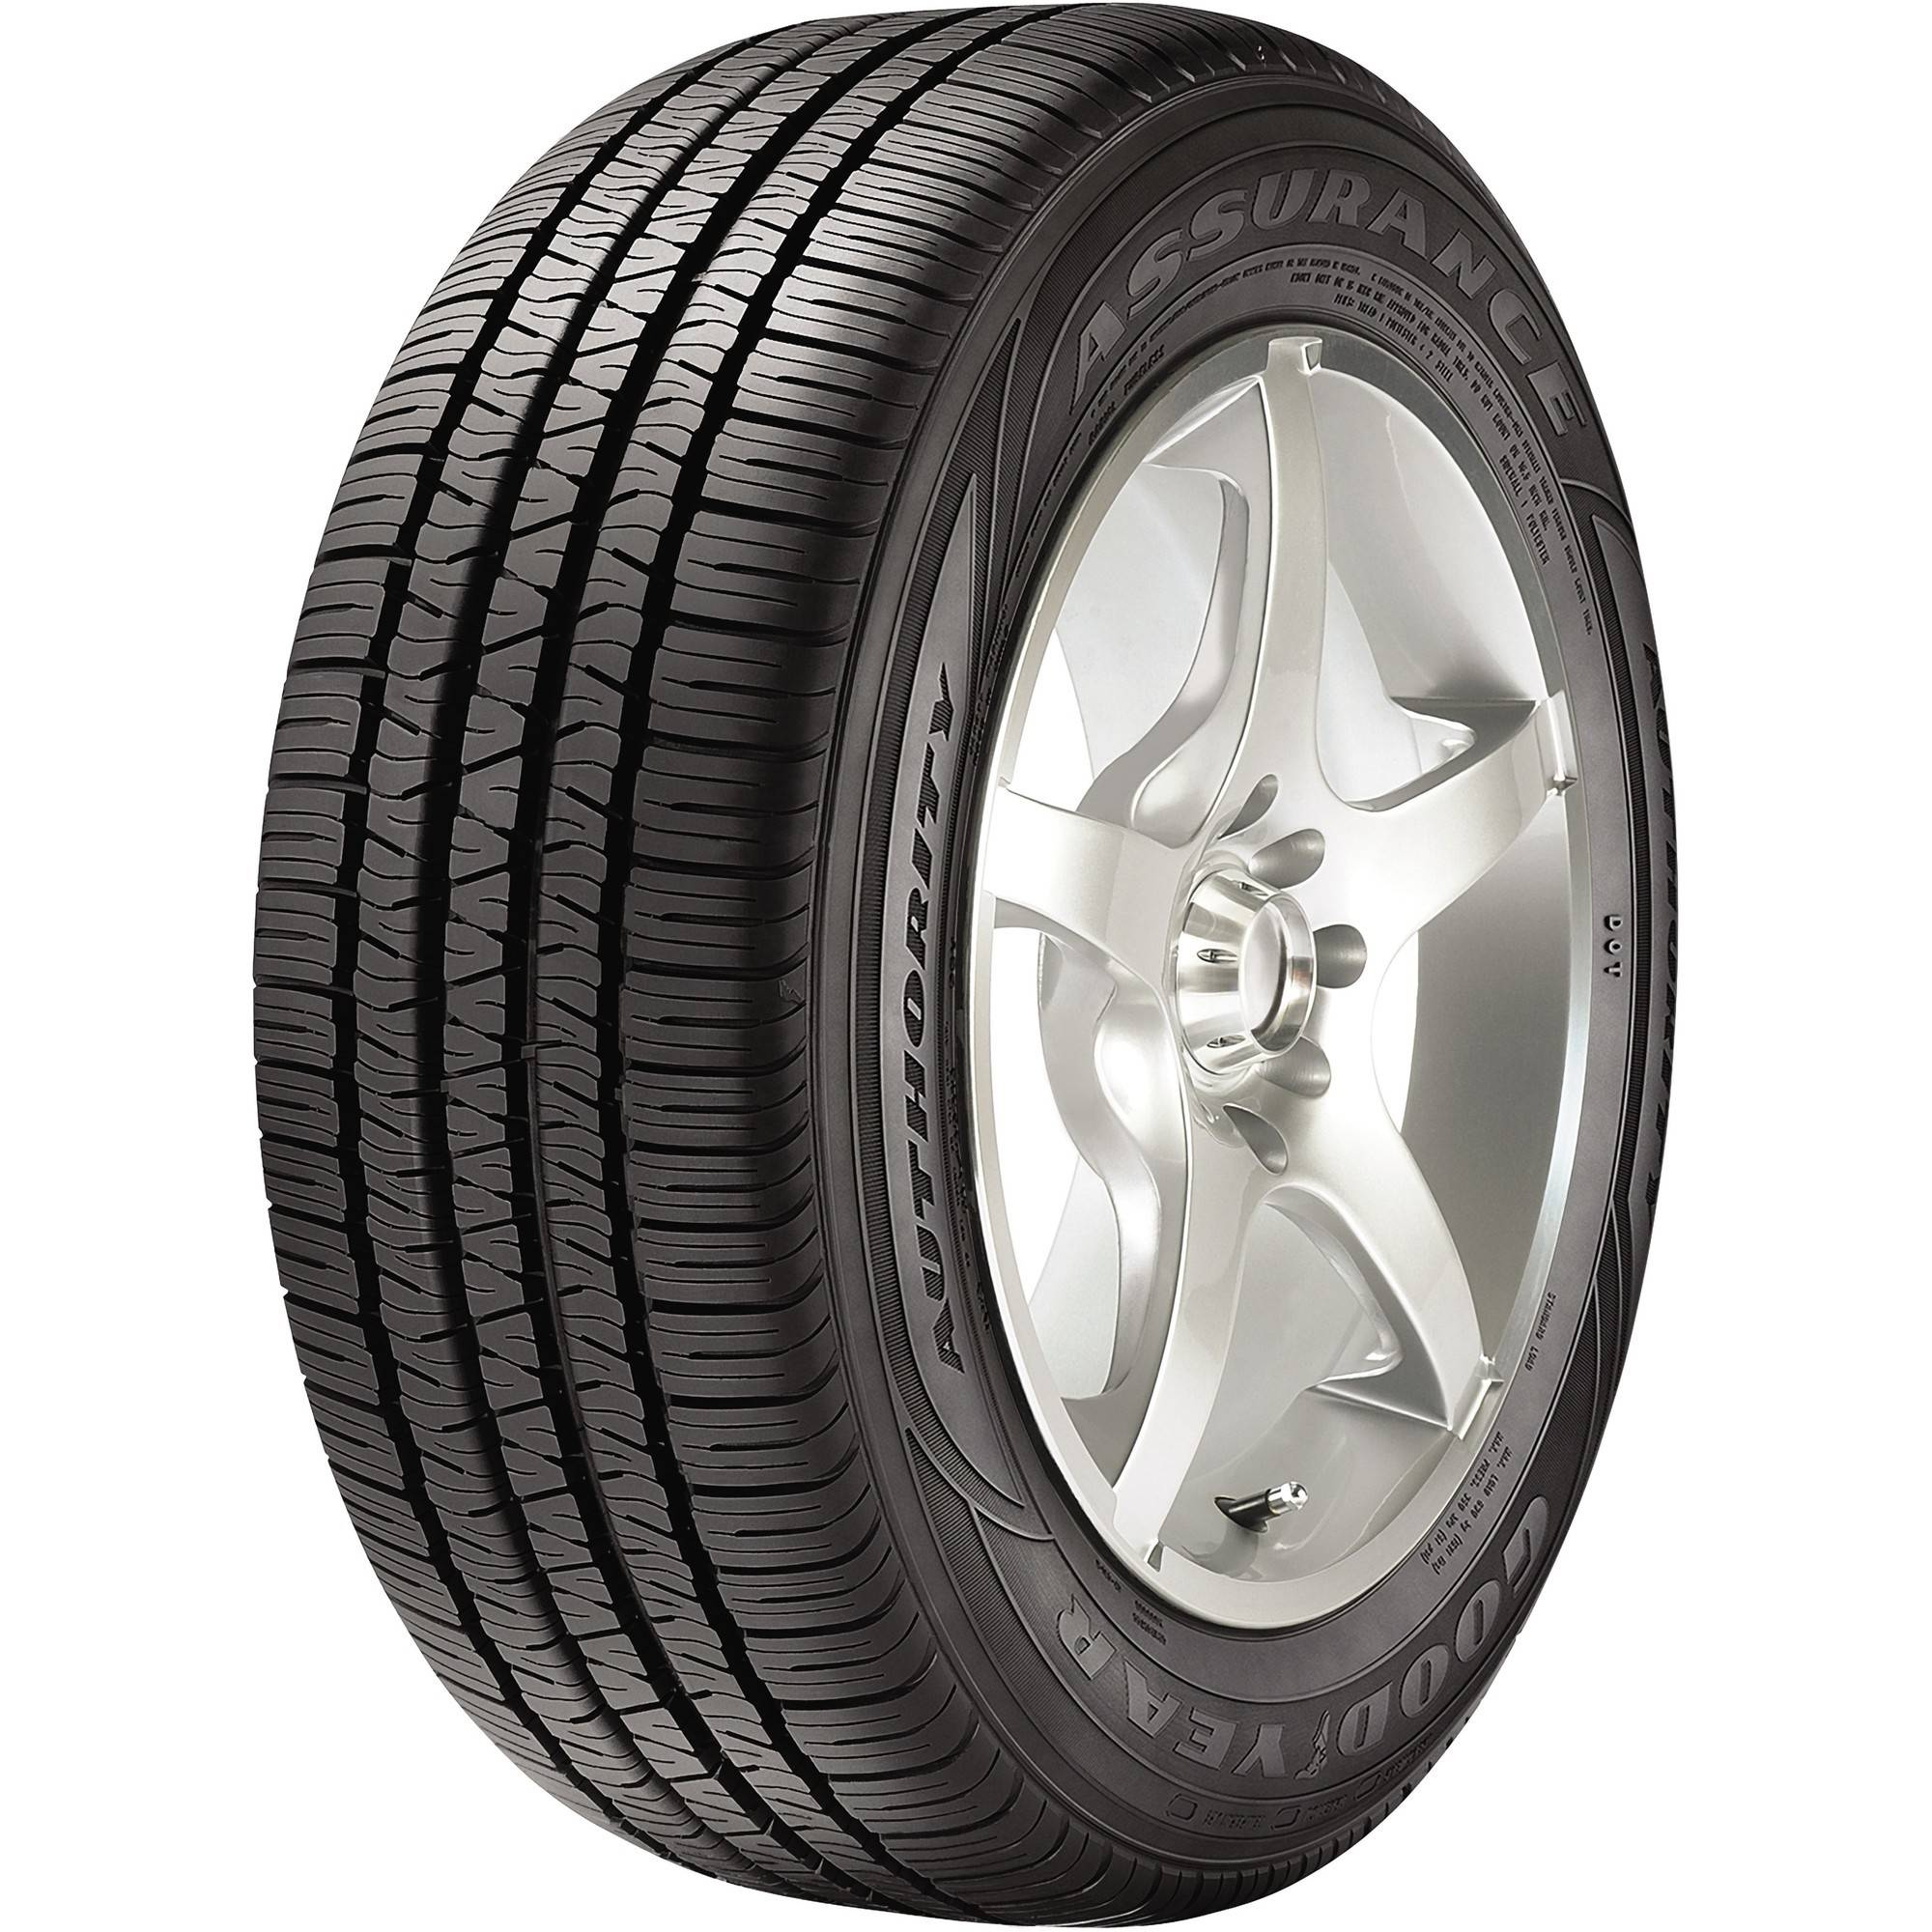 Goodyear Assurance Authority Tire 225/65R17  102T